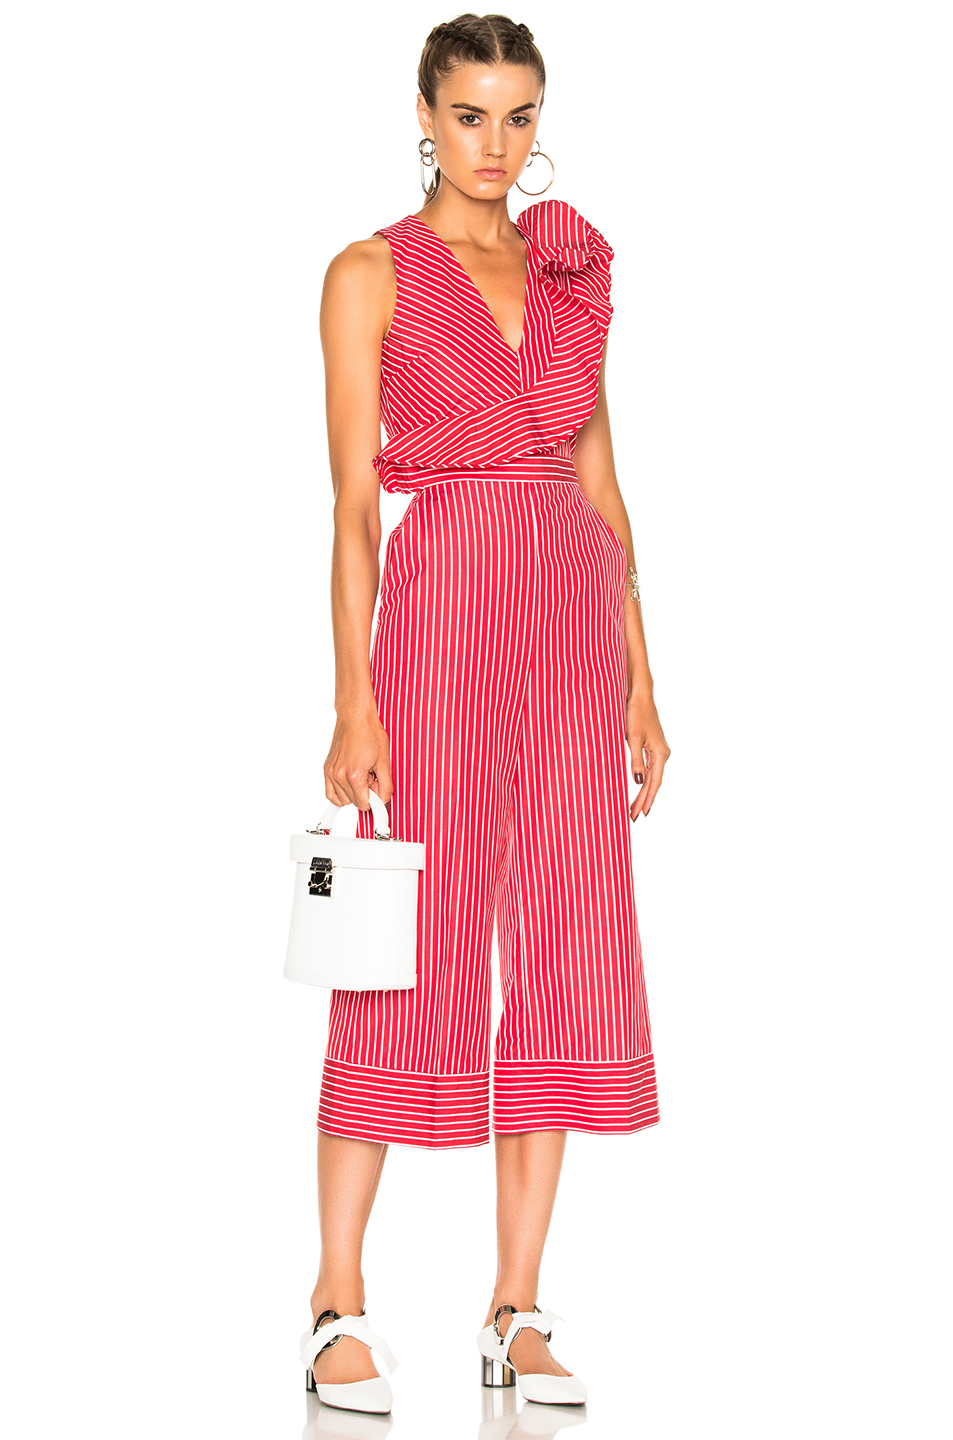 MSGM Striped Sleeveless Jumpsuit in Red,Stripes